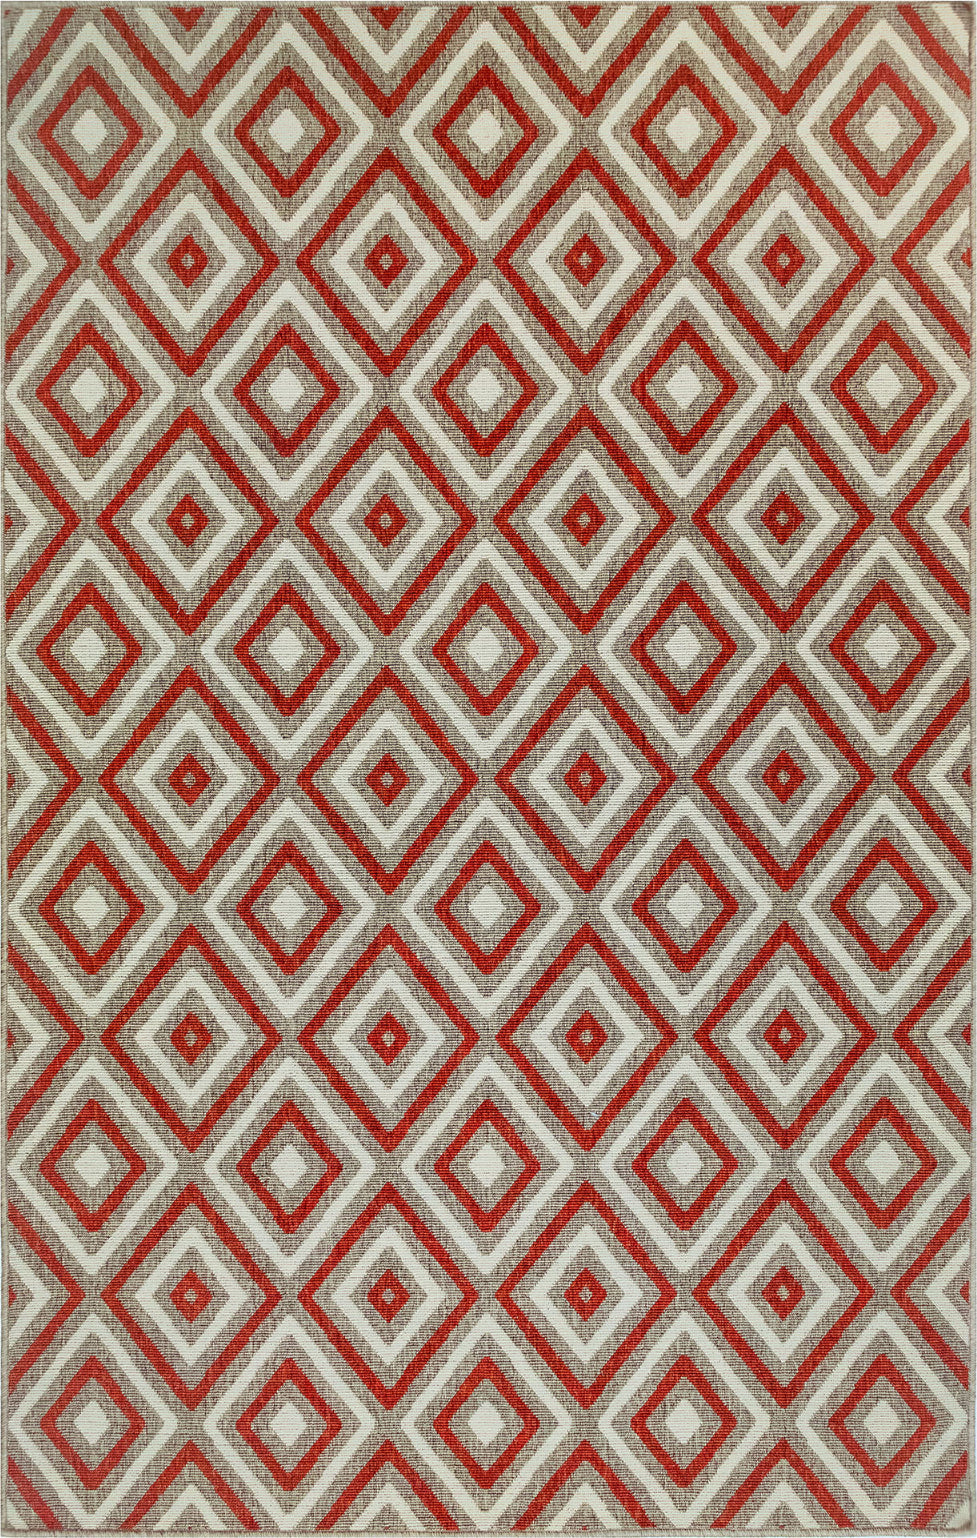 Trans Ocean Riviera Nested Diamond Red Area Rug Mirror by Liora Manne main image